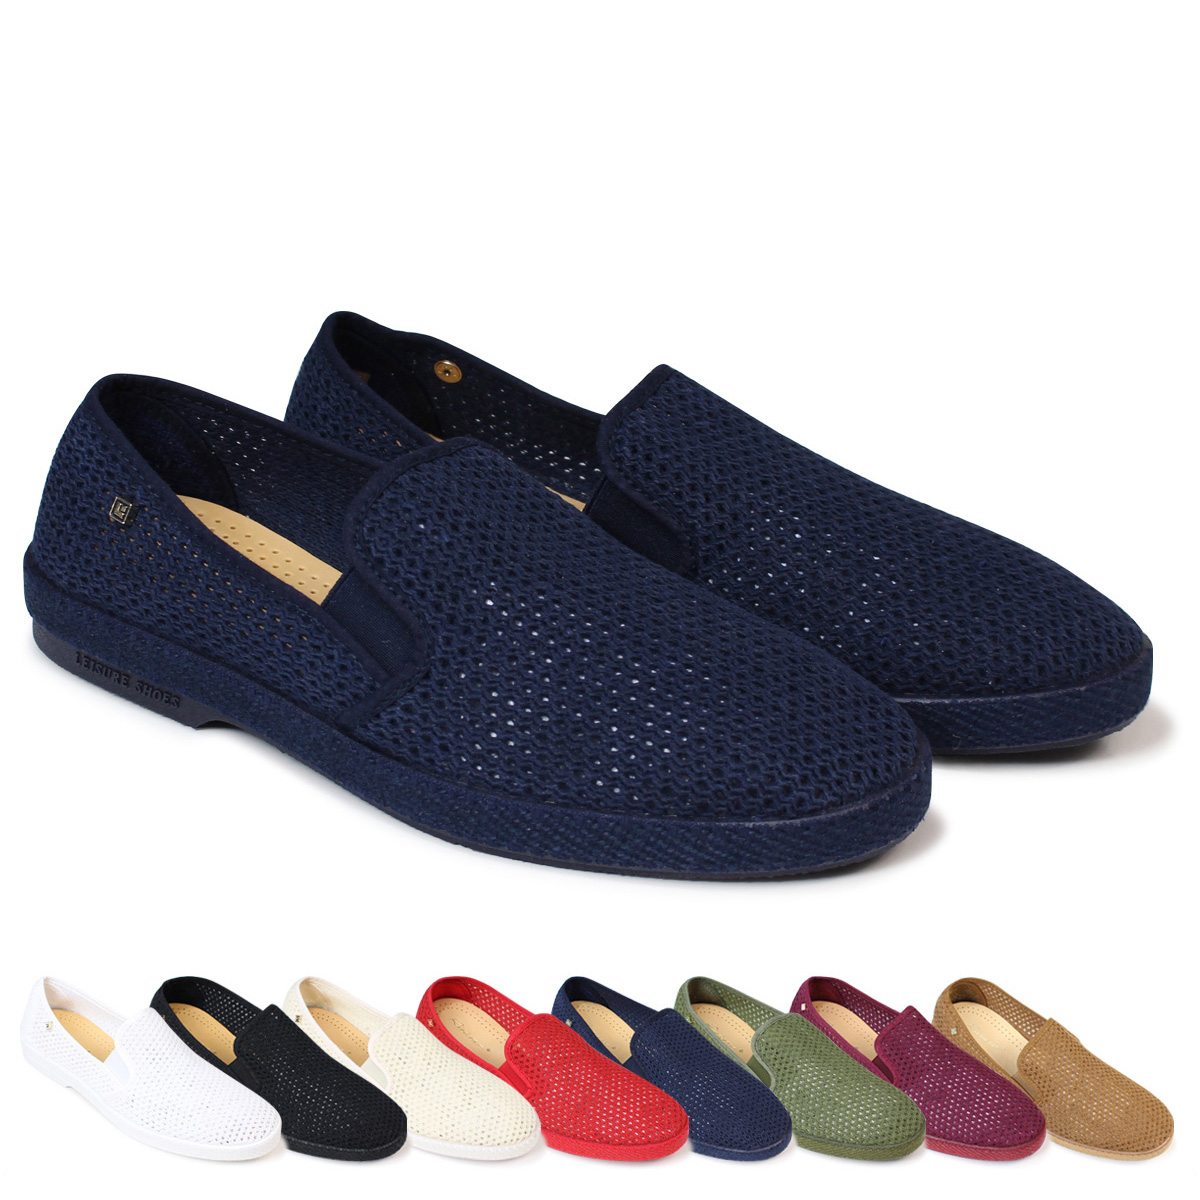 competitive price ccad8 b1d0b RIVIERAS CLASSIC 30 degrees Riviera slip-ons classical music men espadrille  [183]